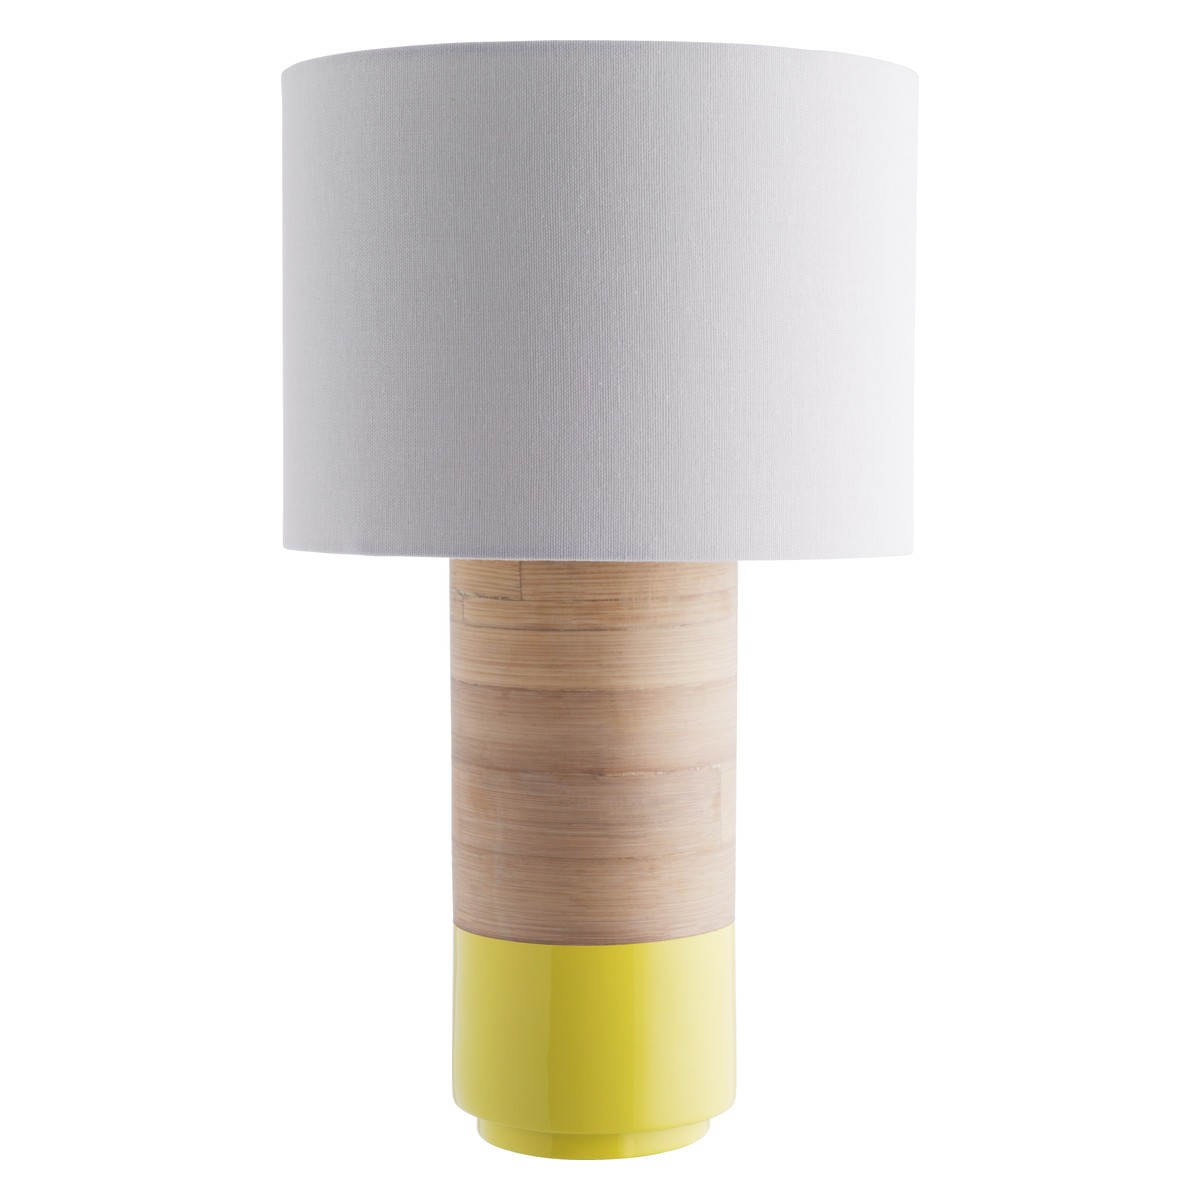 Why Bamboo Table Lamp